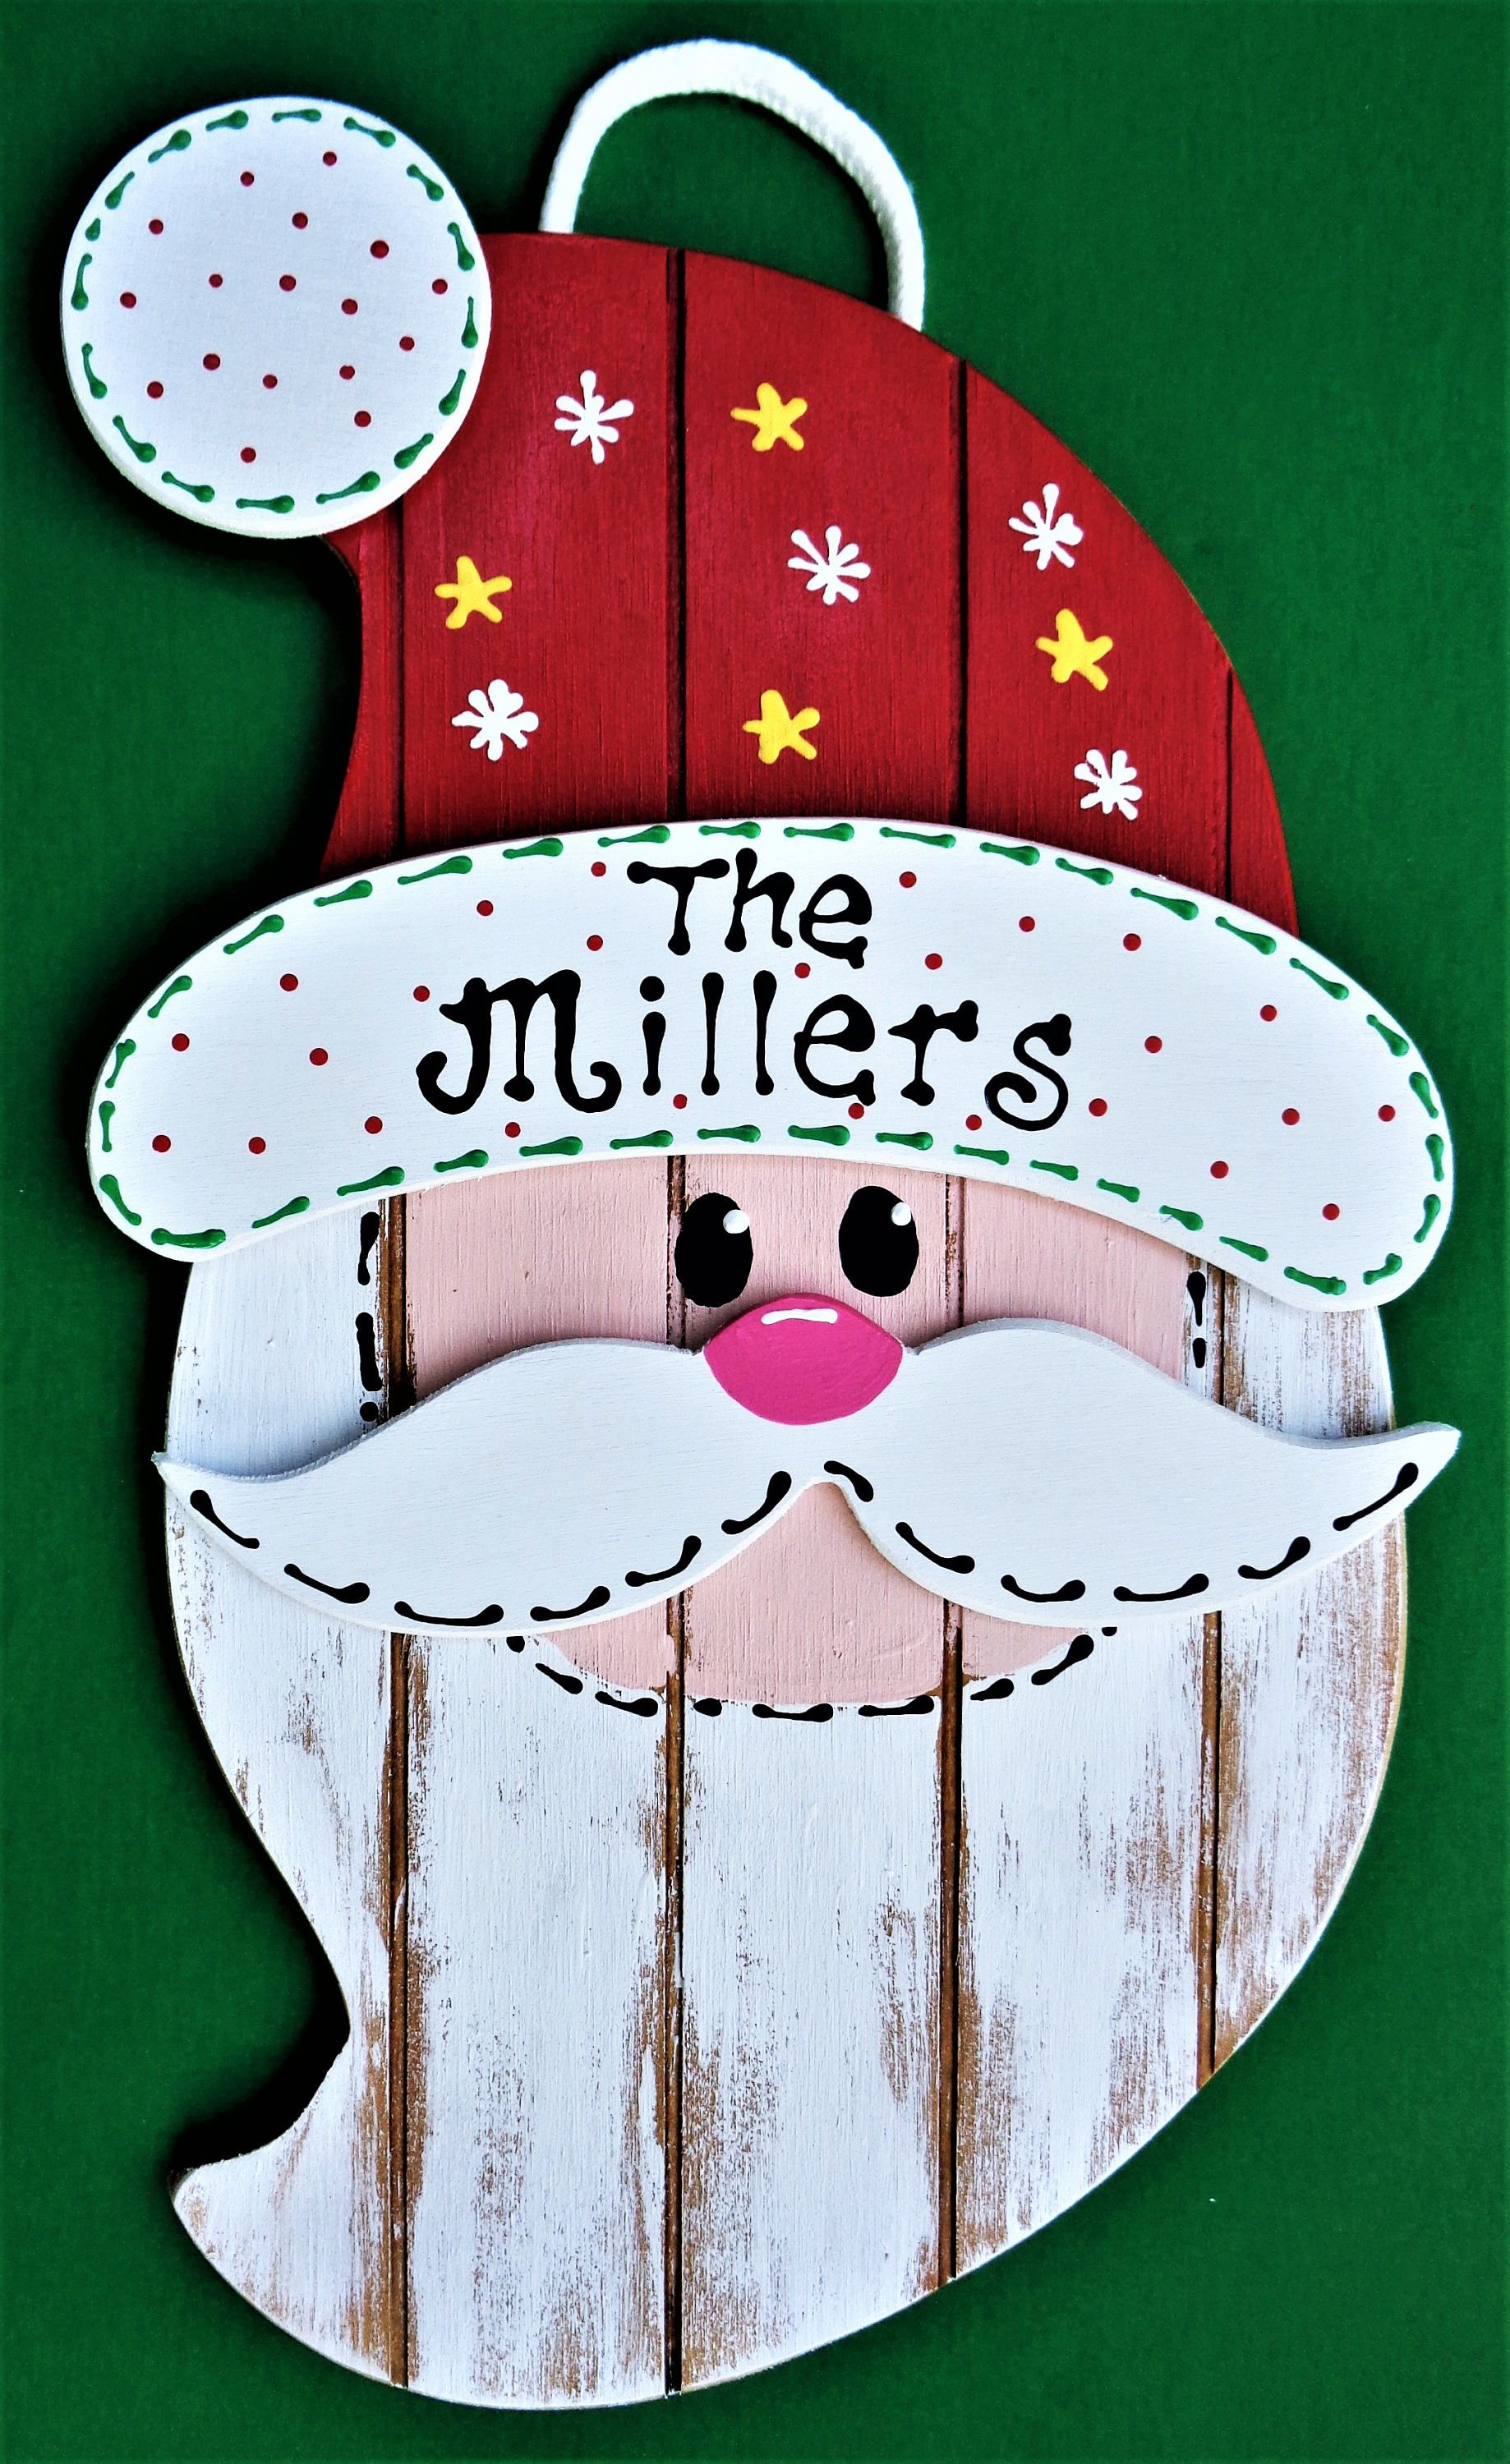 Photo of Personalized Name SANTA SIGN Grooved Wood Hanging Hanger Plaque Winter Door Wall Country Wood Crafts CHRISTMAS Holiday Decor Wood Wooden